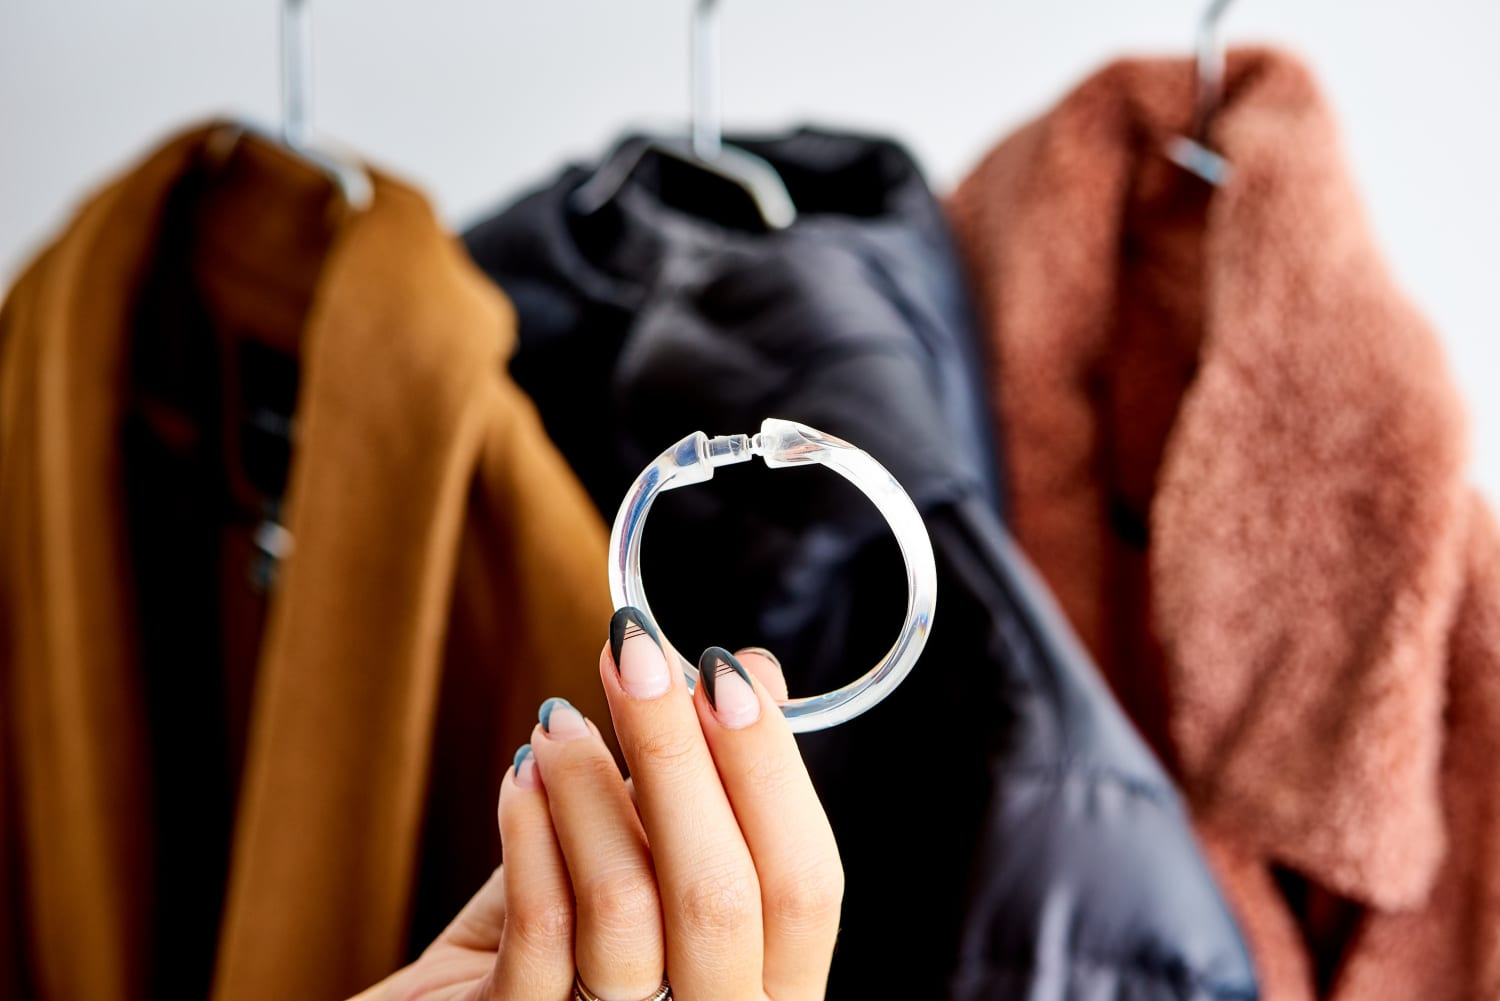 A Clever Way Organize Your Closet with $1 Shower Curtain Rings